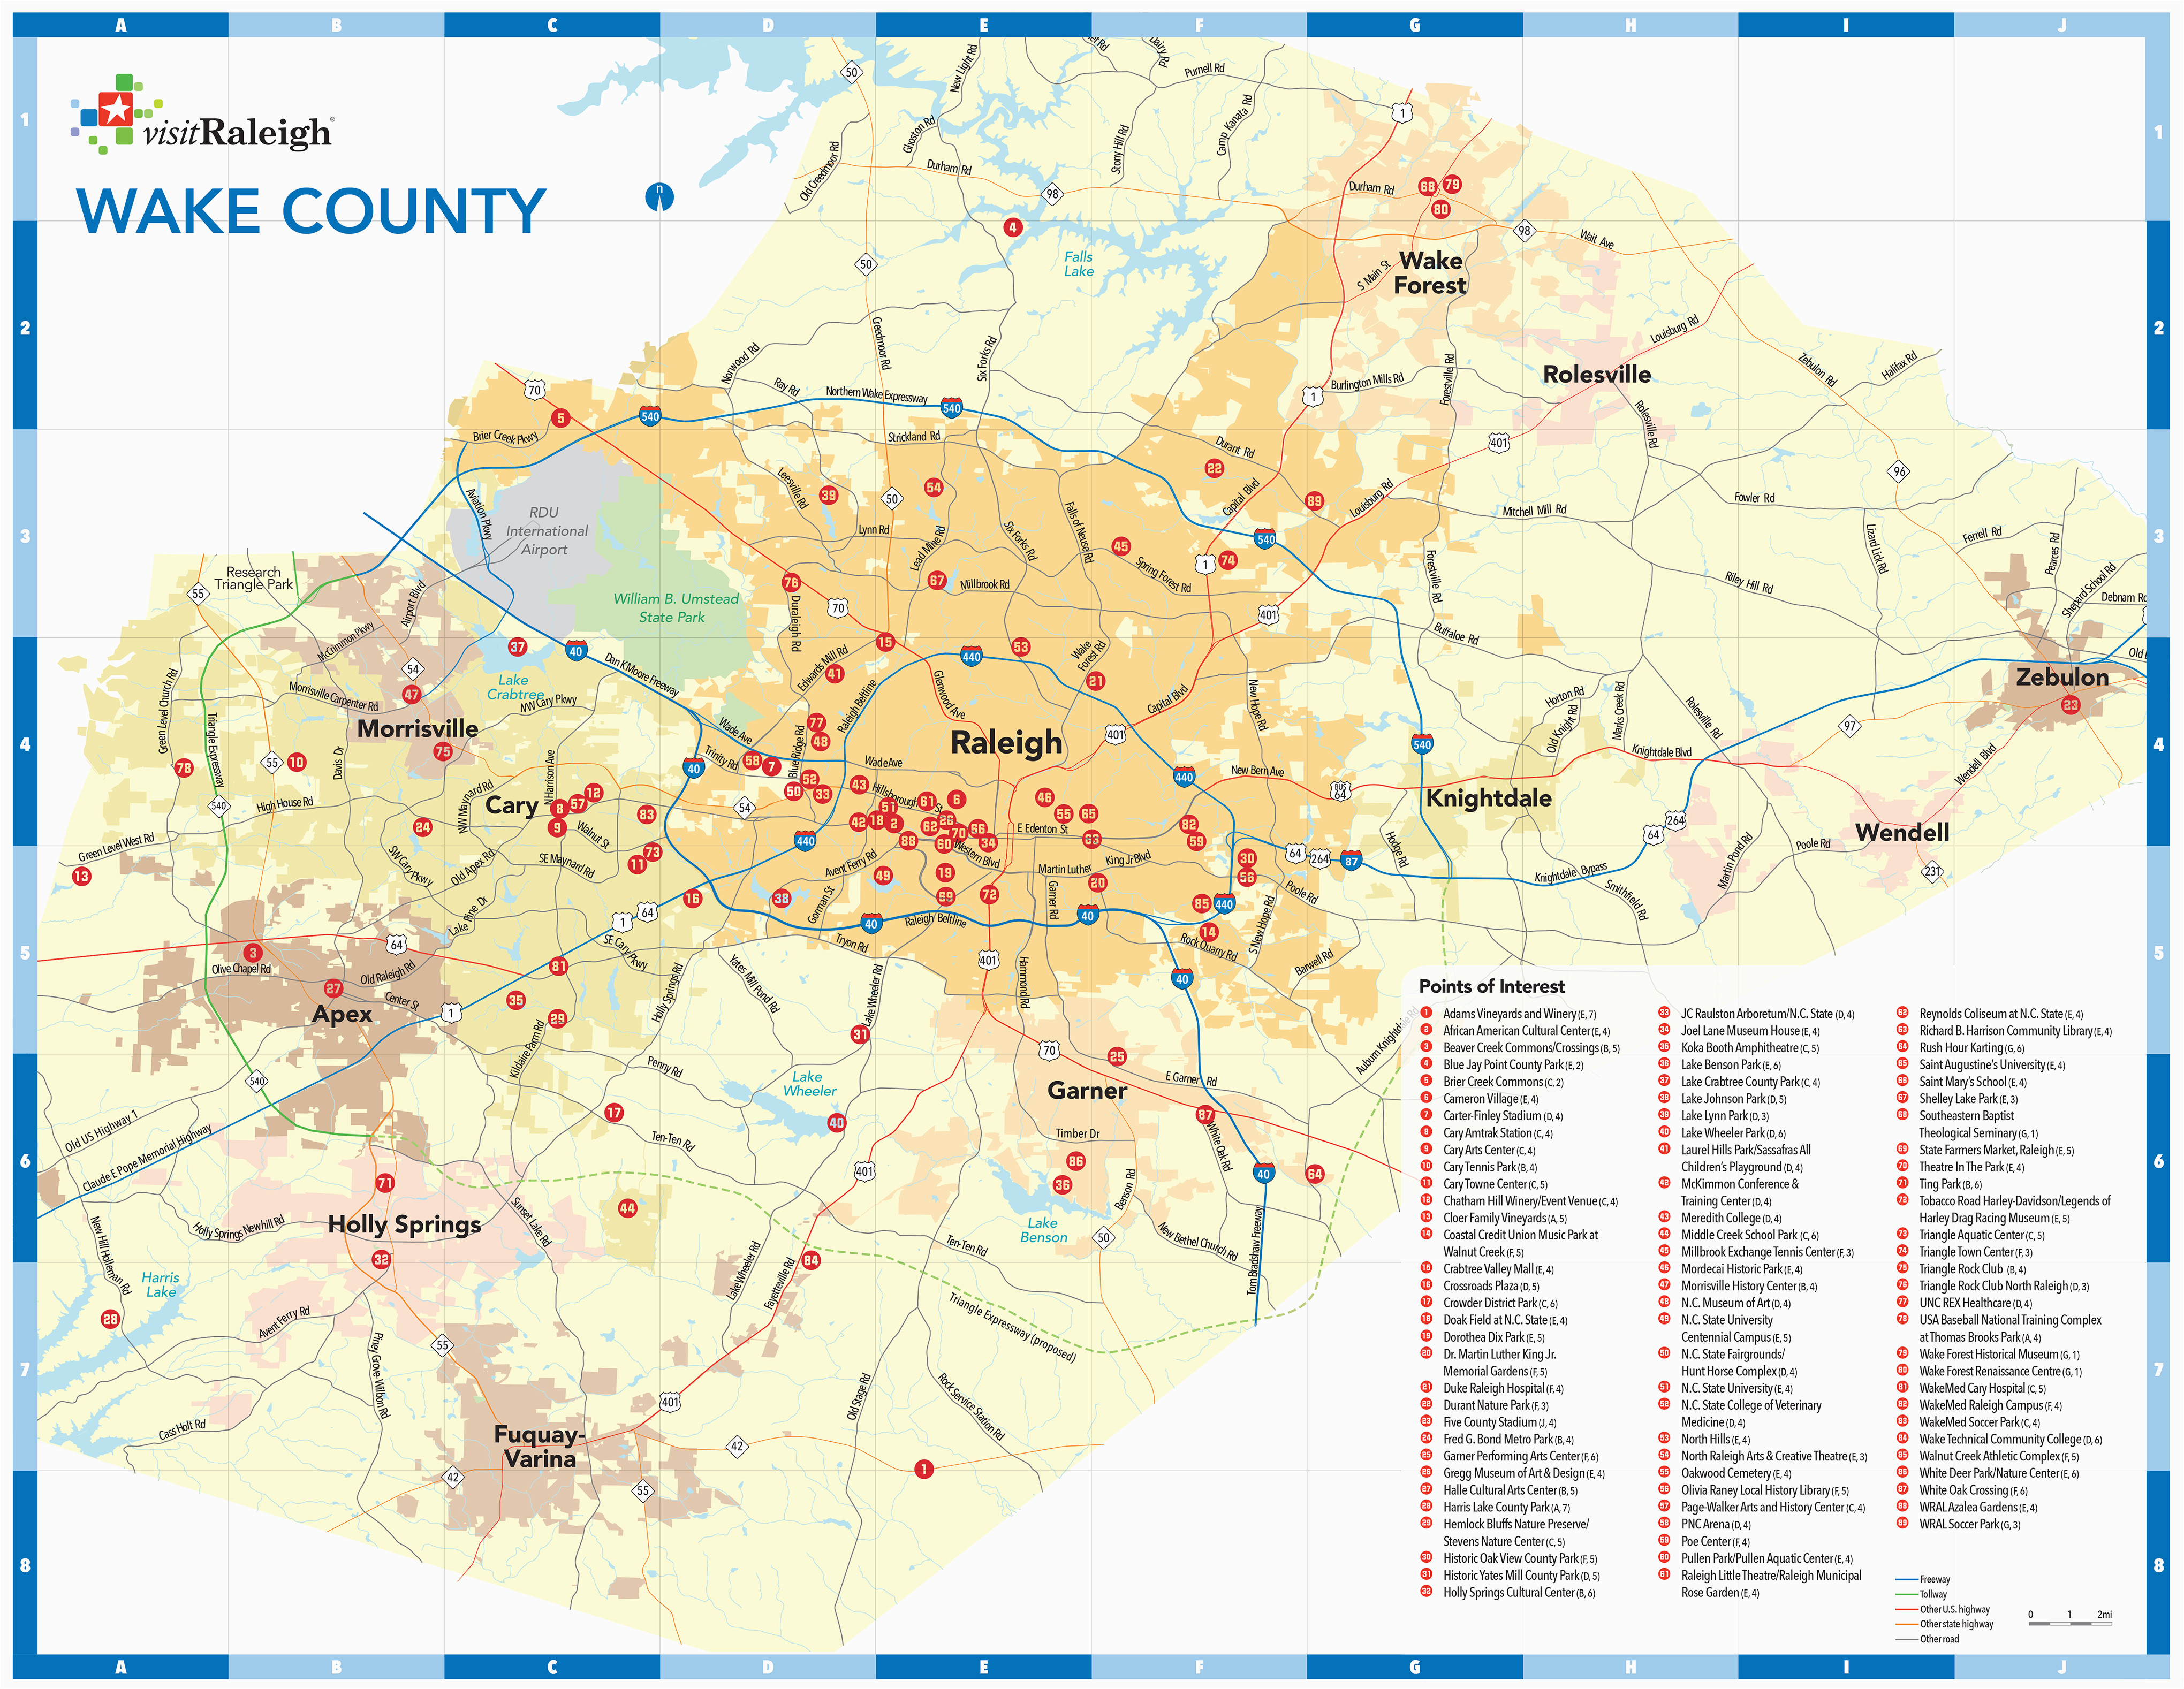 North Carolina Transportation Map Raleigh N C Maps Downtown ... on